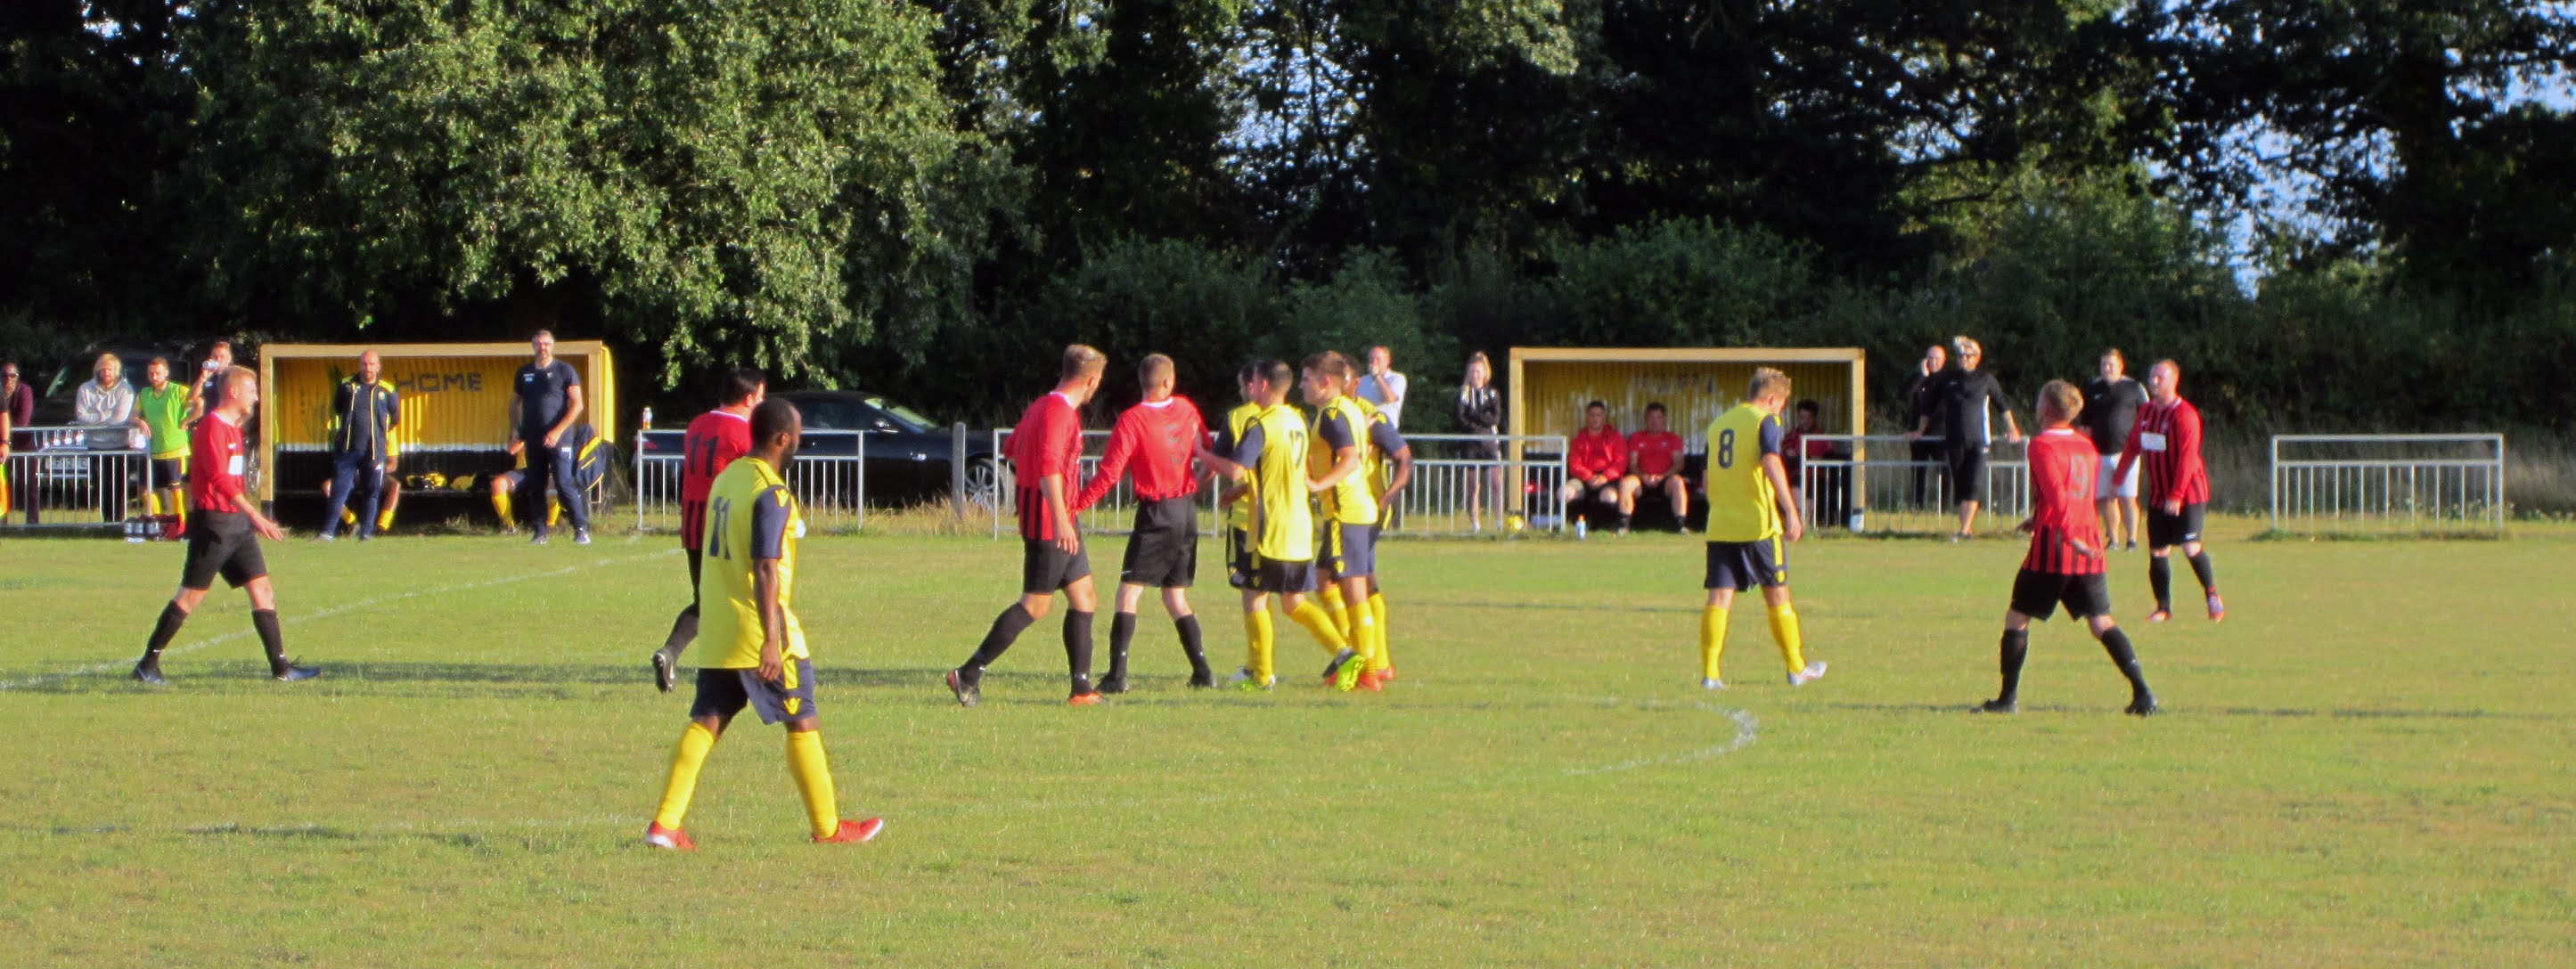 Mortimer FC and Cookham Dean FC players square up